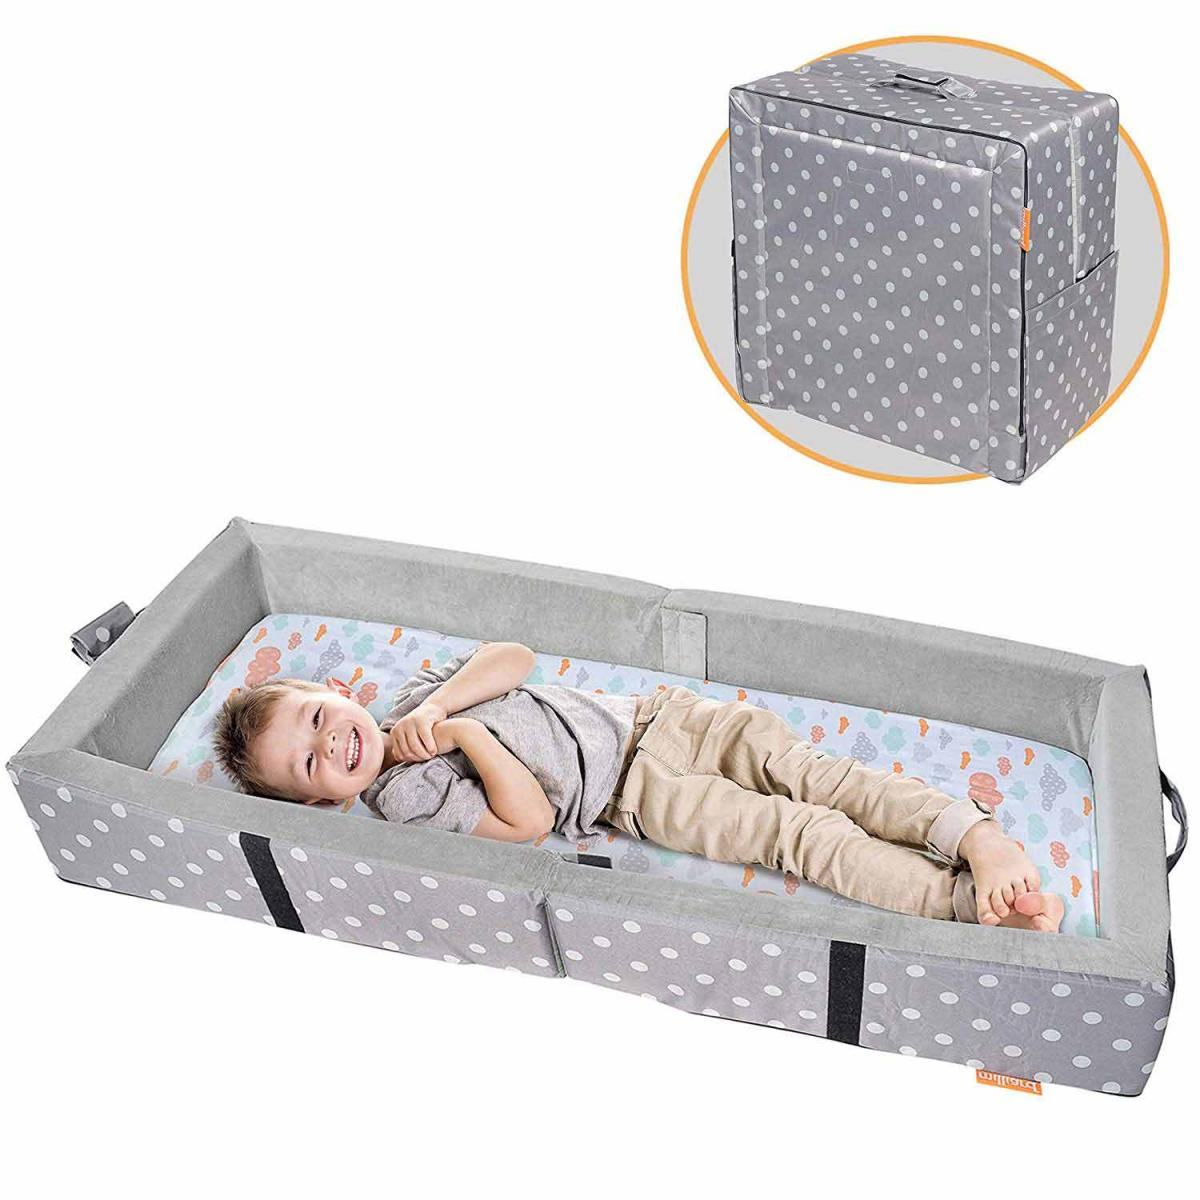 Best Toddler Travel Beds 2019 For Airplanes Or Anywhere Parenting